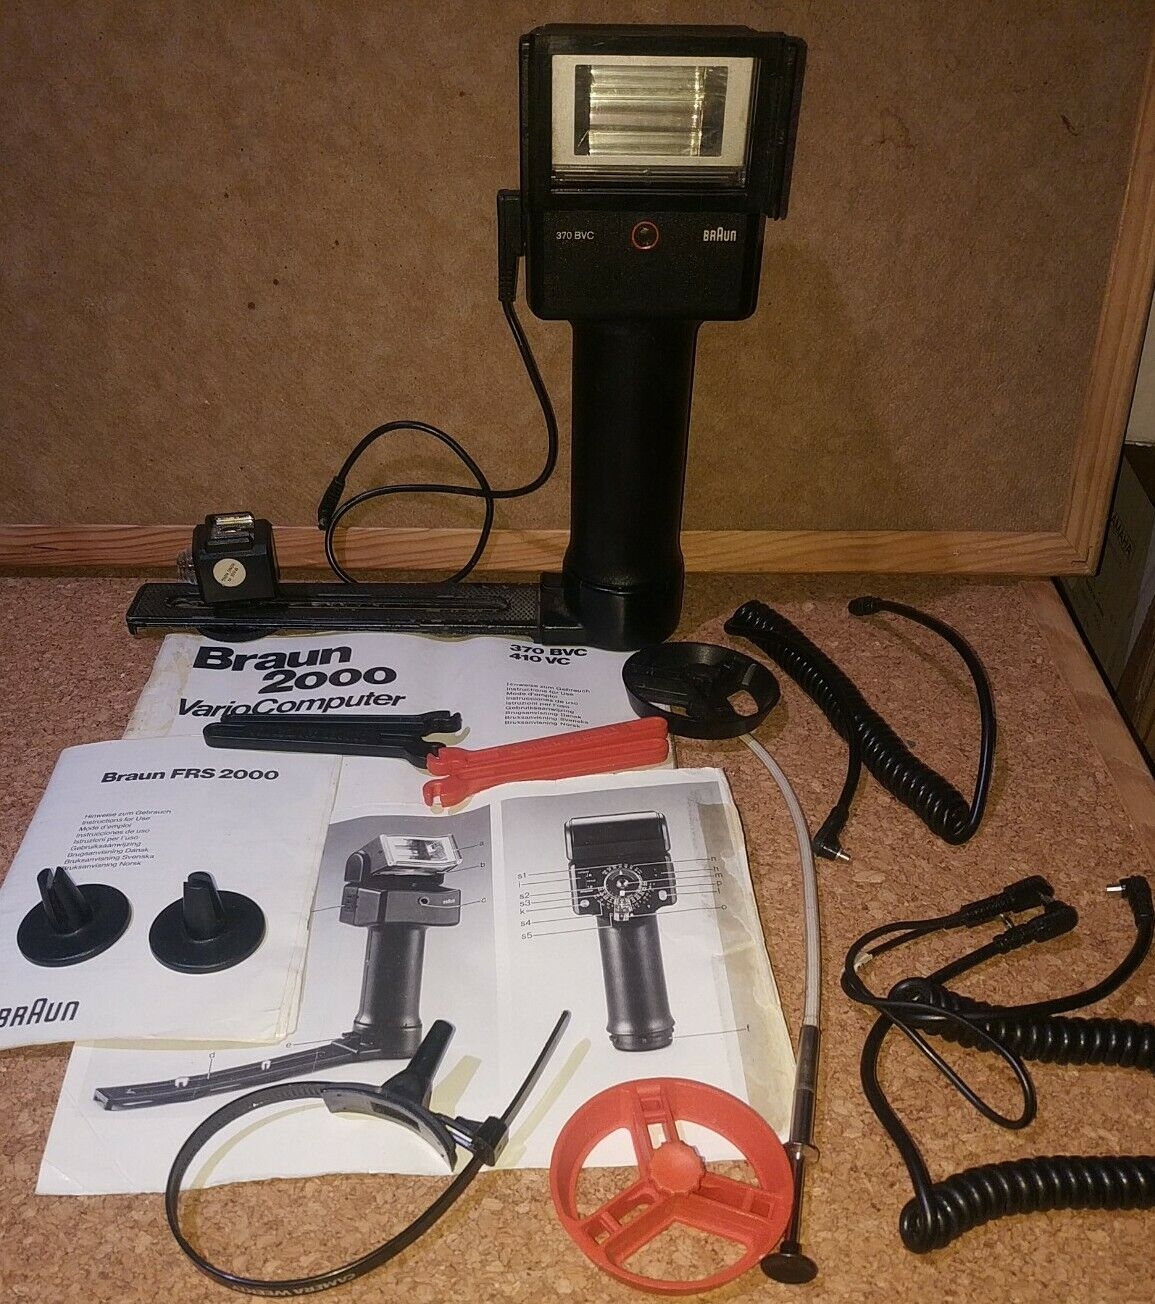 Braun 2000 Vario Computer Flash unit 410 Vc with Accessories & Manual